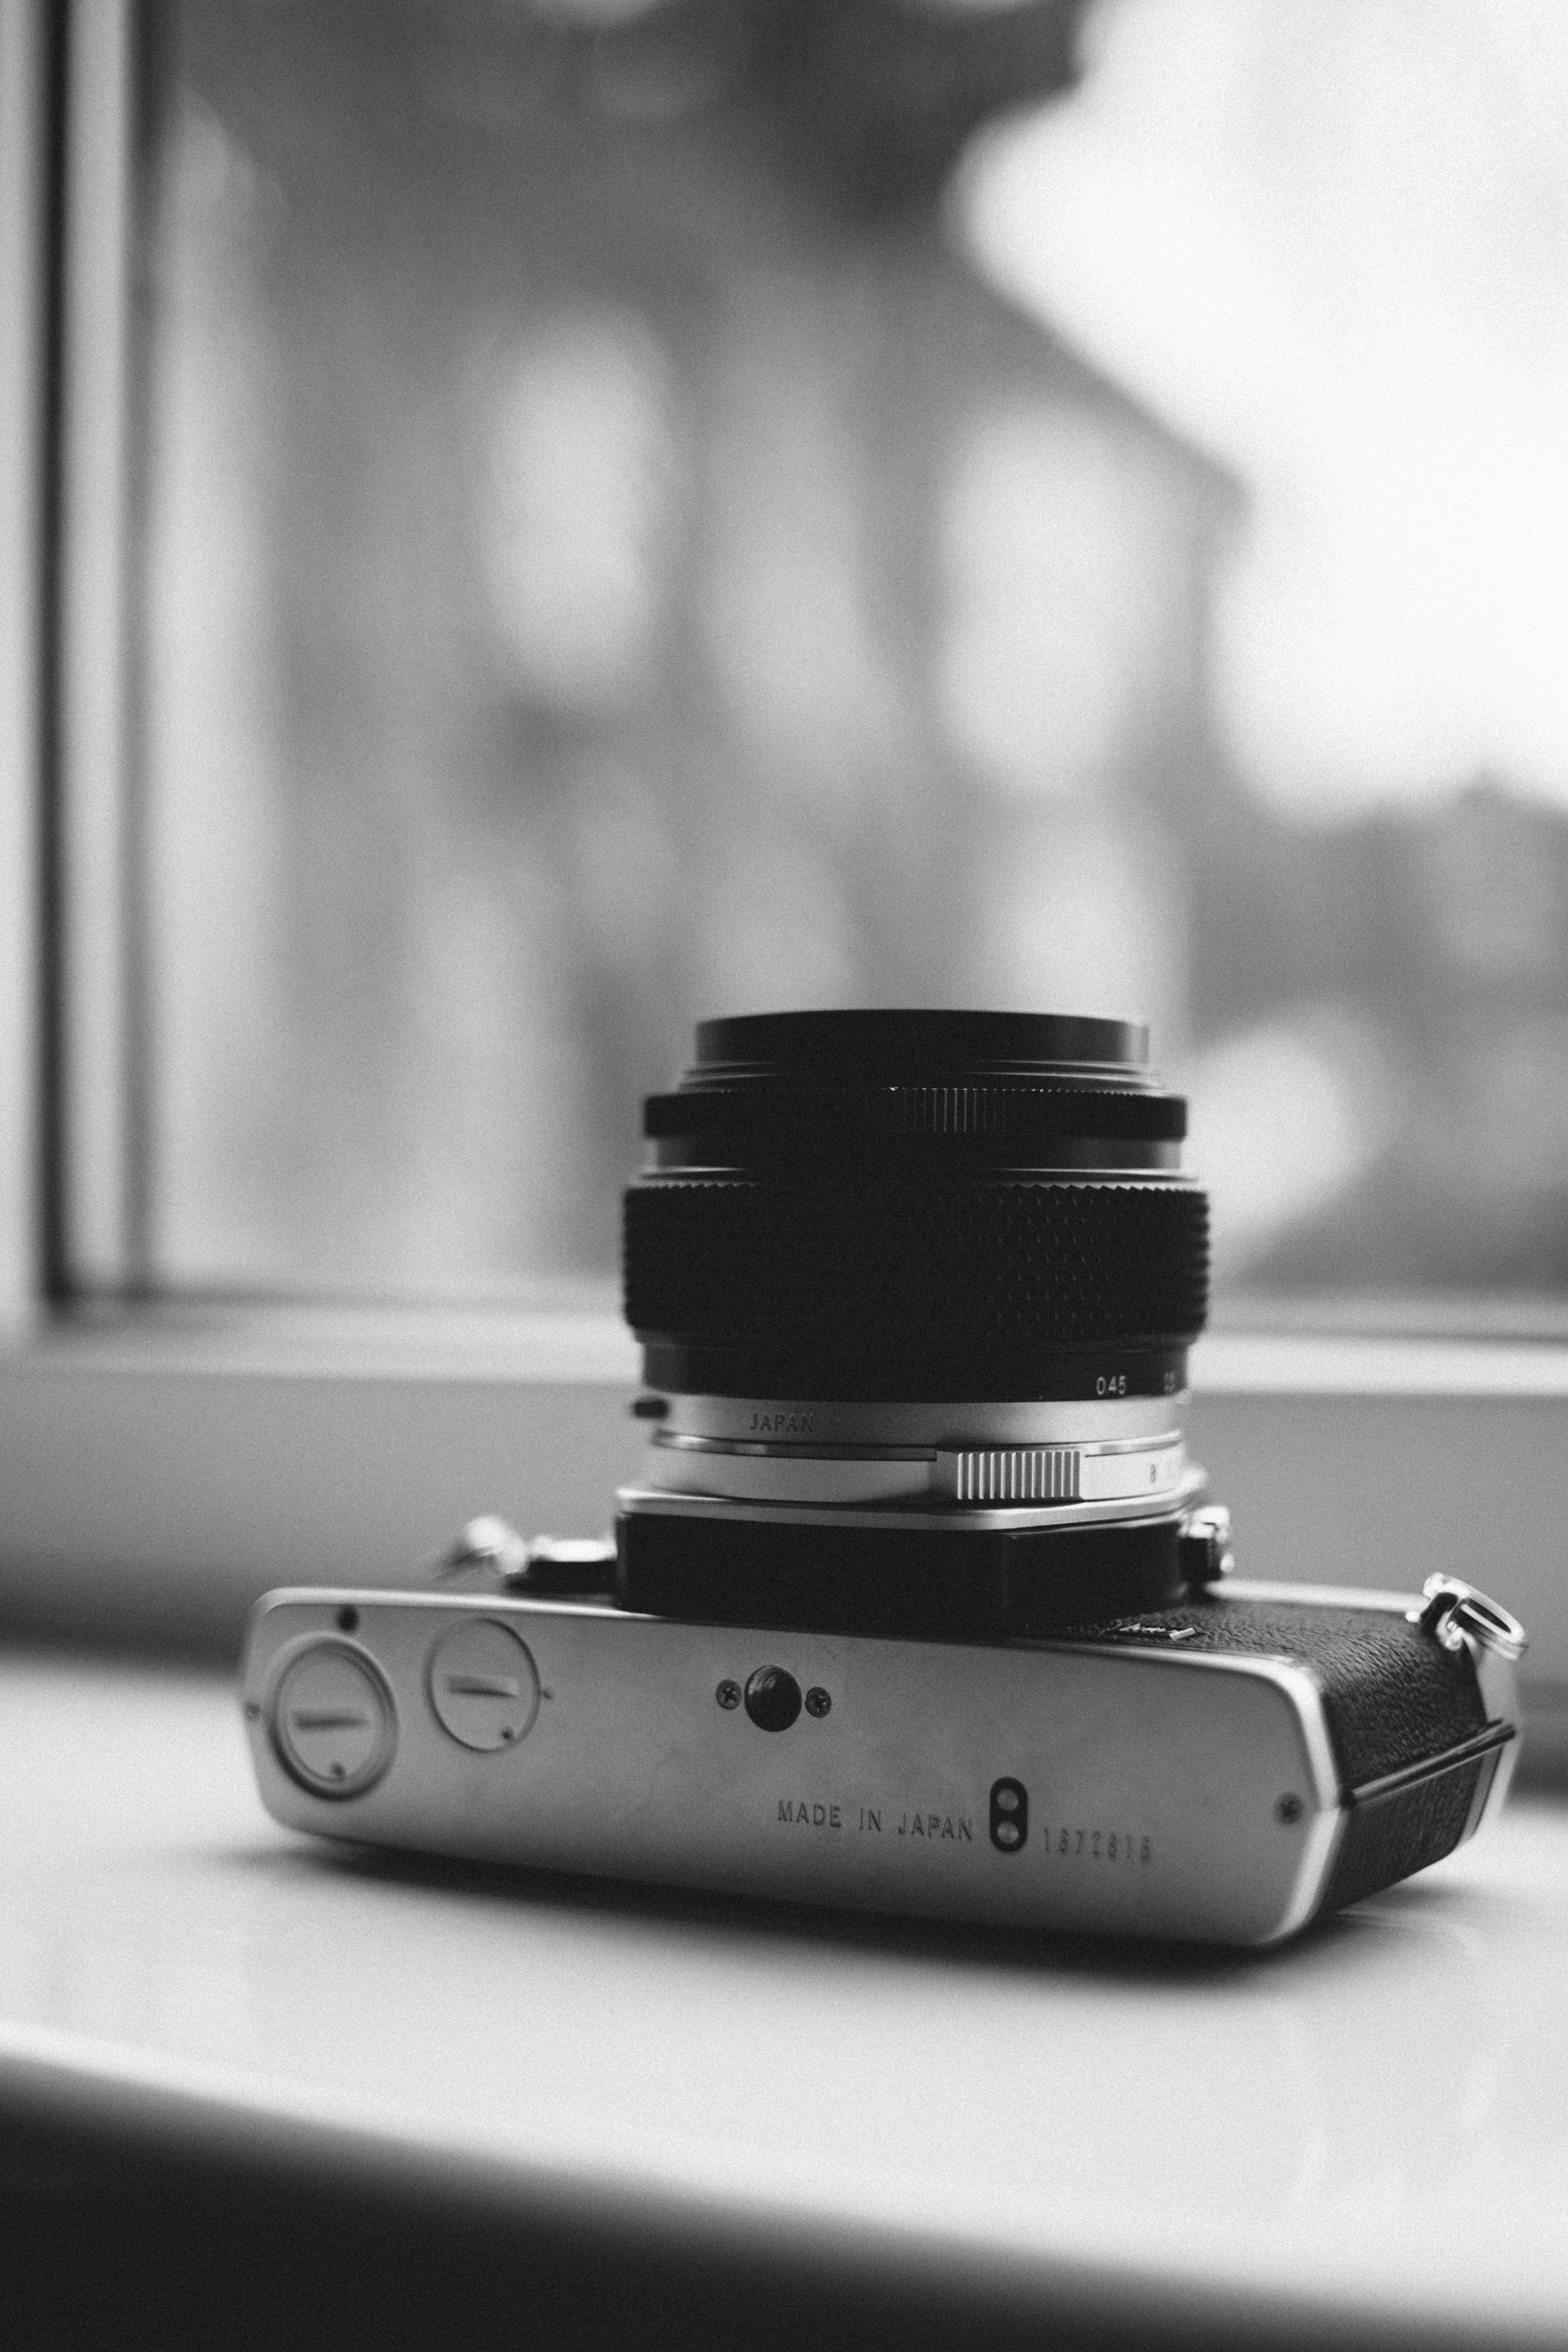 Grayscale Photography of Camera Near Window